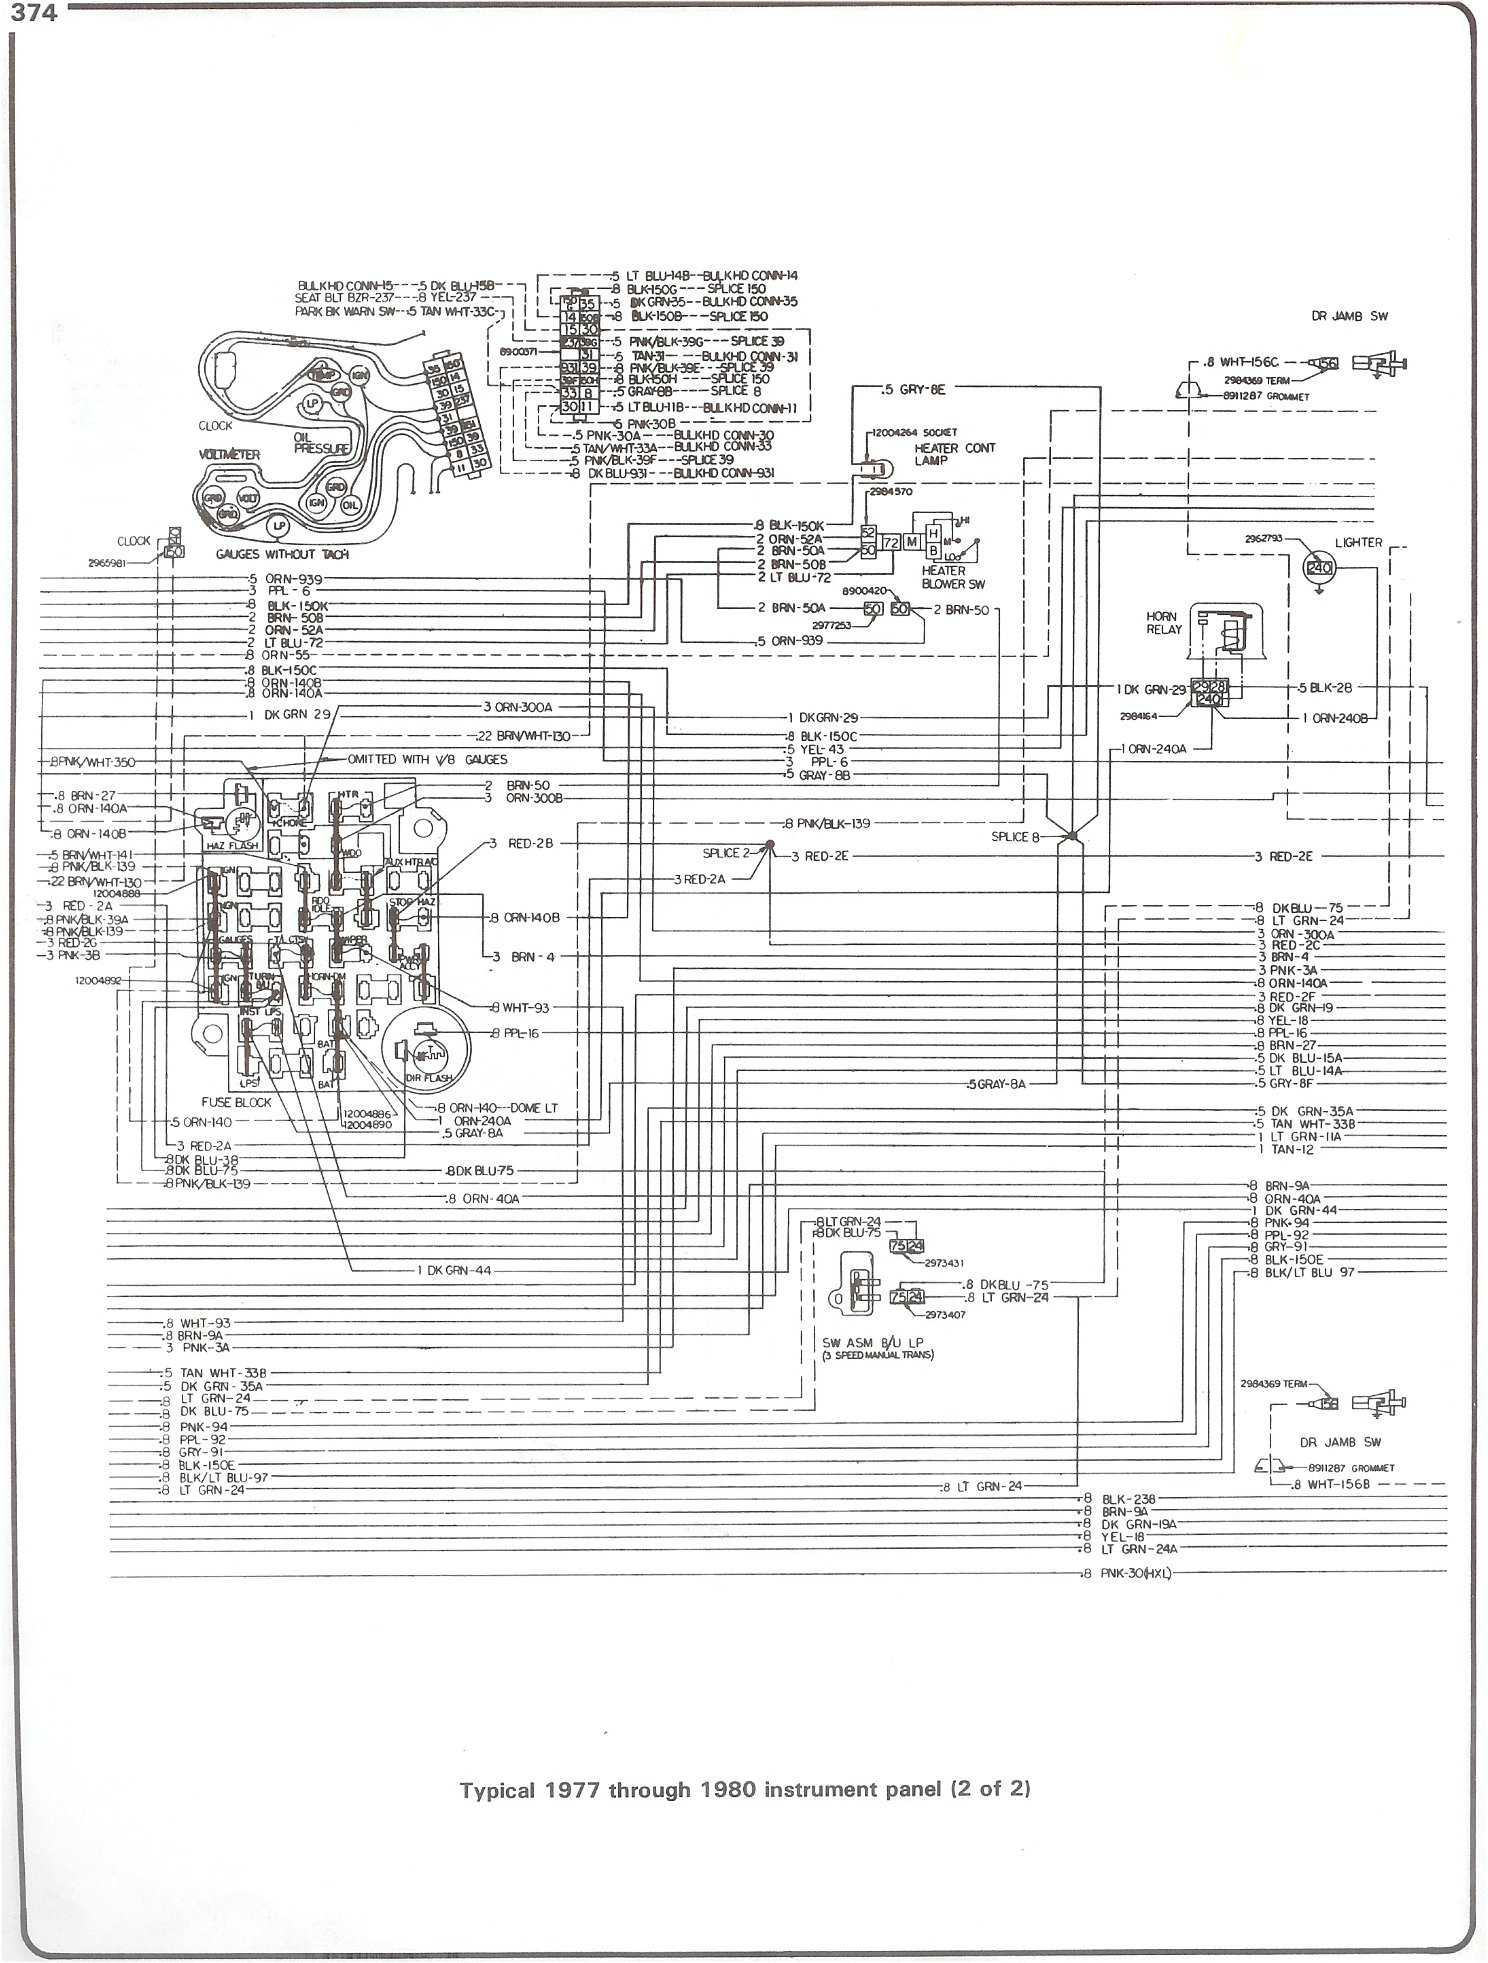 77 80_instrument_pg2 1978 chevy truck wiring diagram chevy malibu ignition wiring 1978 chevy truck fuse box diagram at soozxer.org